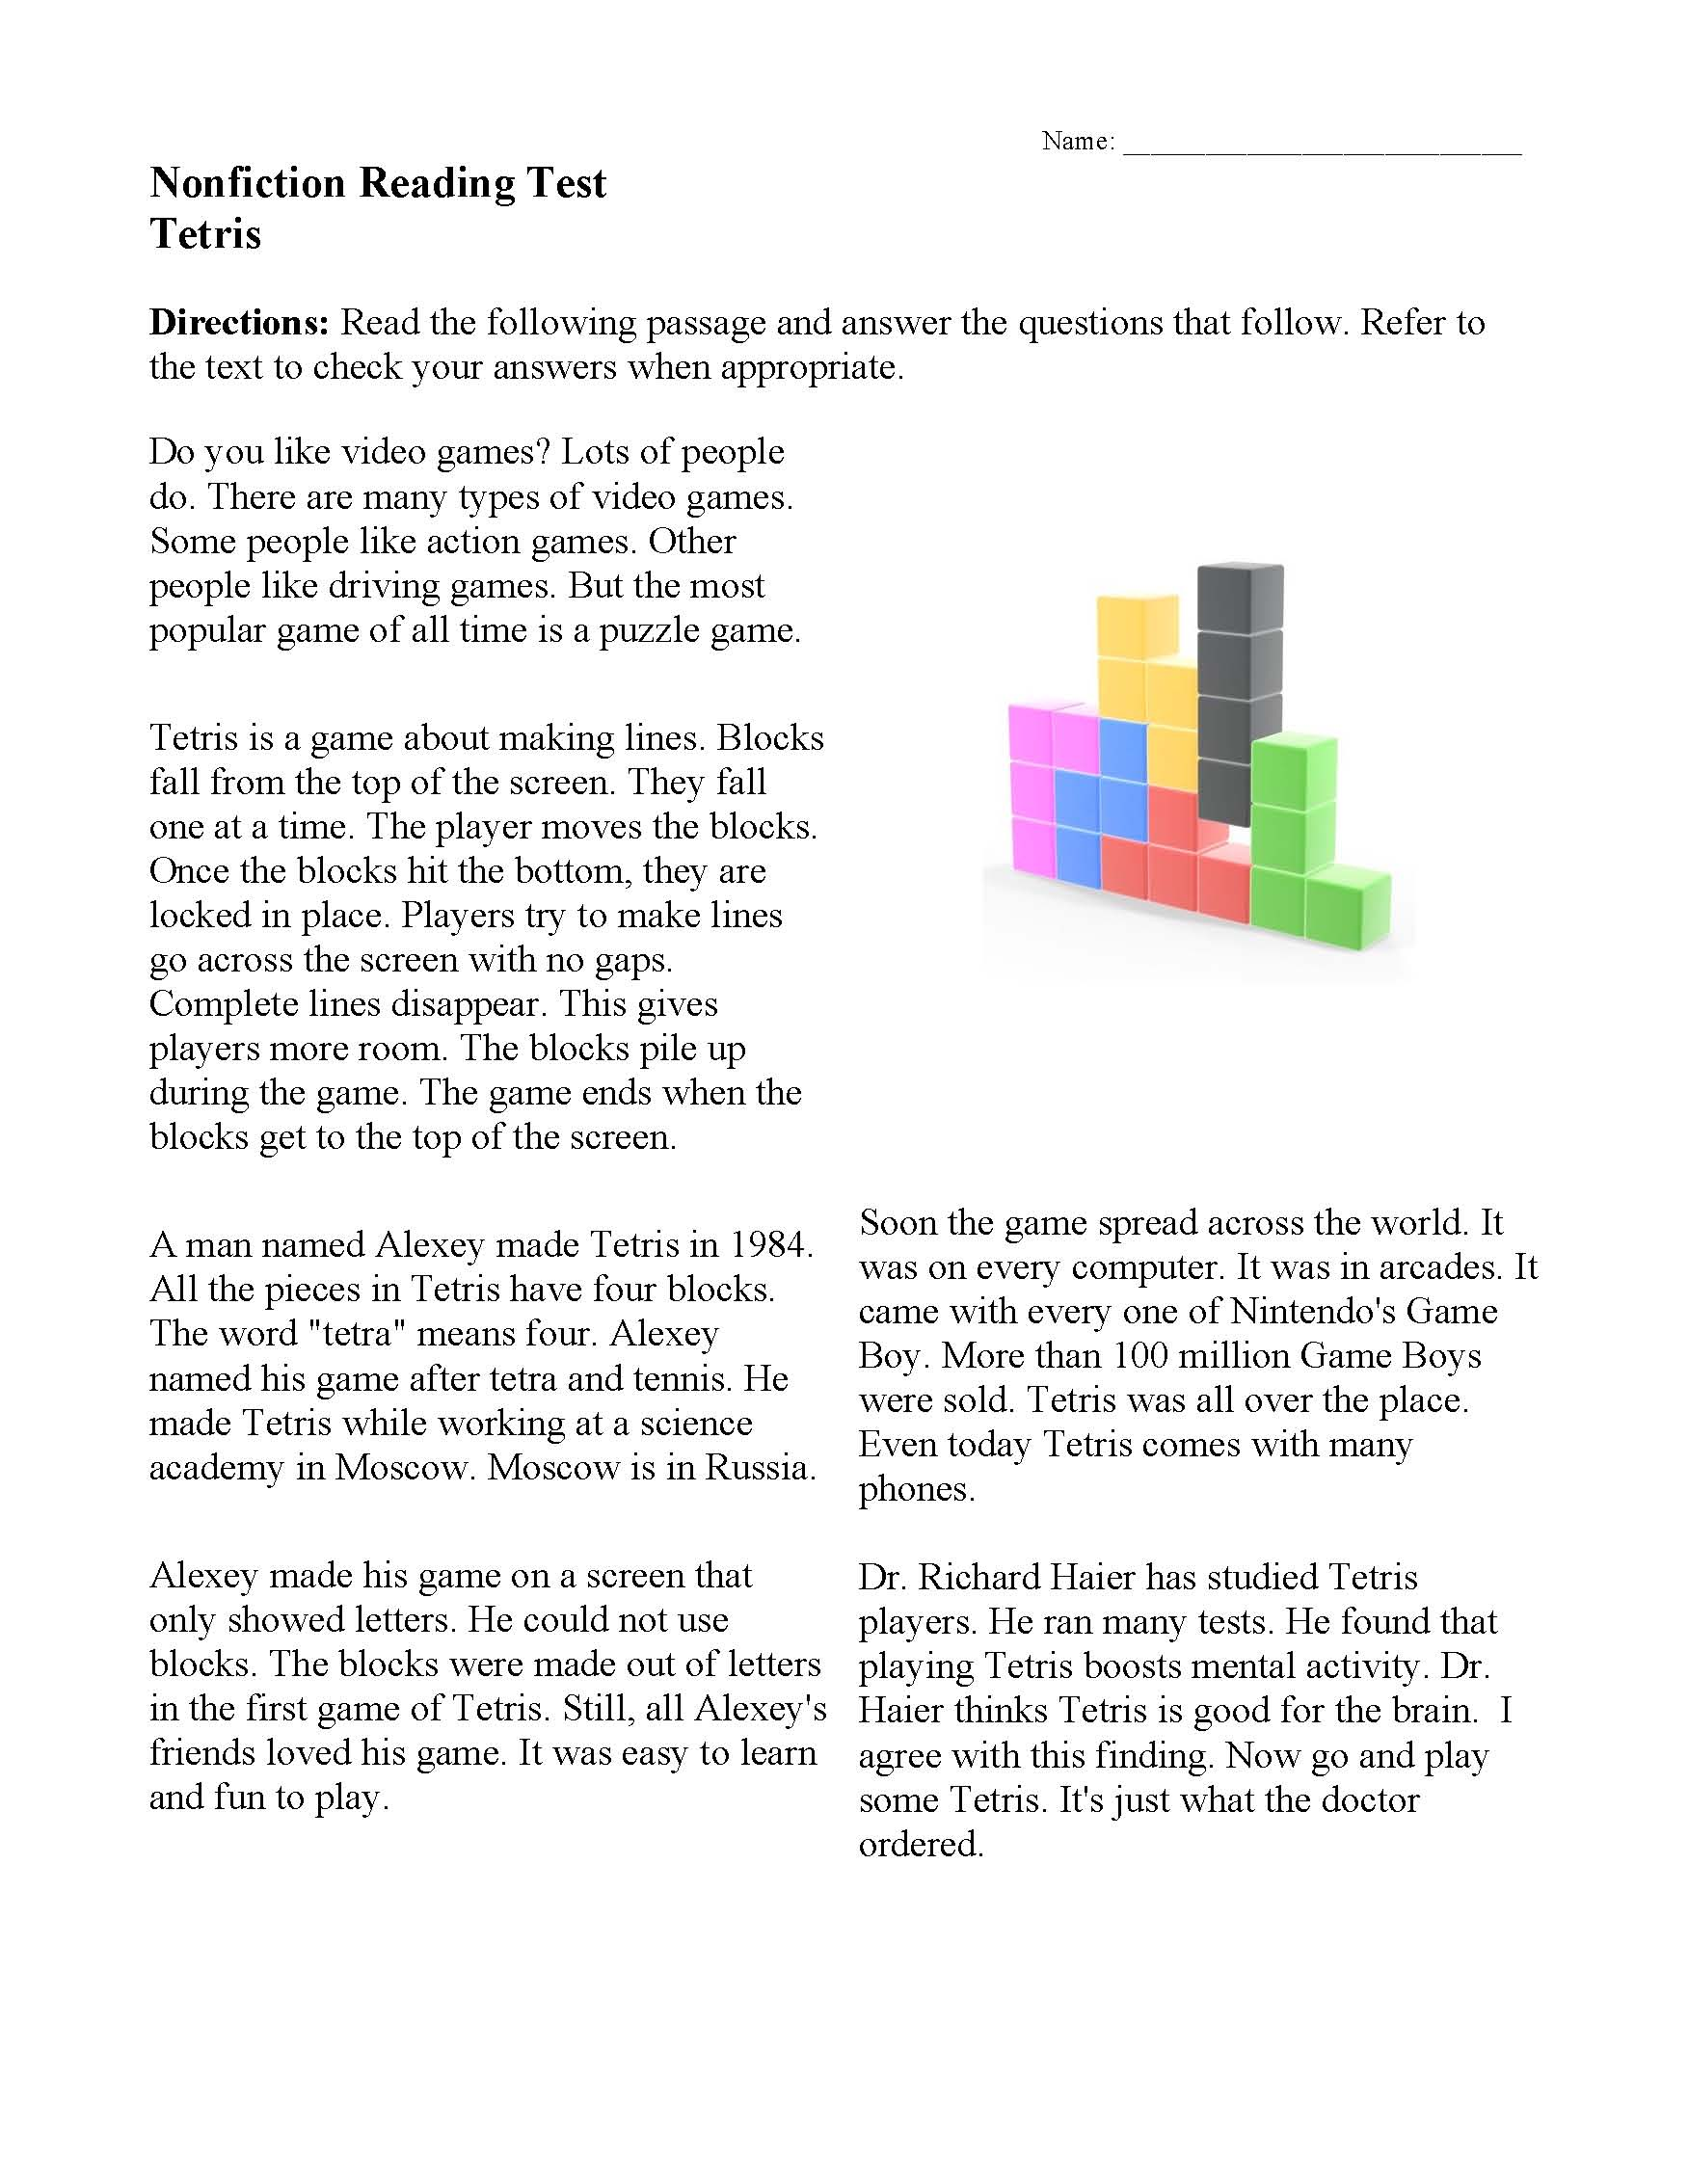 This is a preview image of Tetris. Click on it to enlarge it or view the source file.